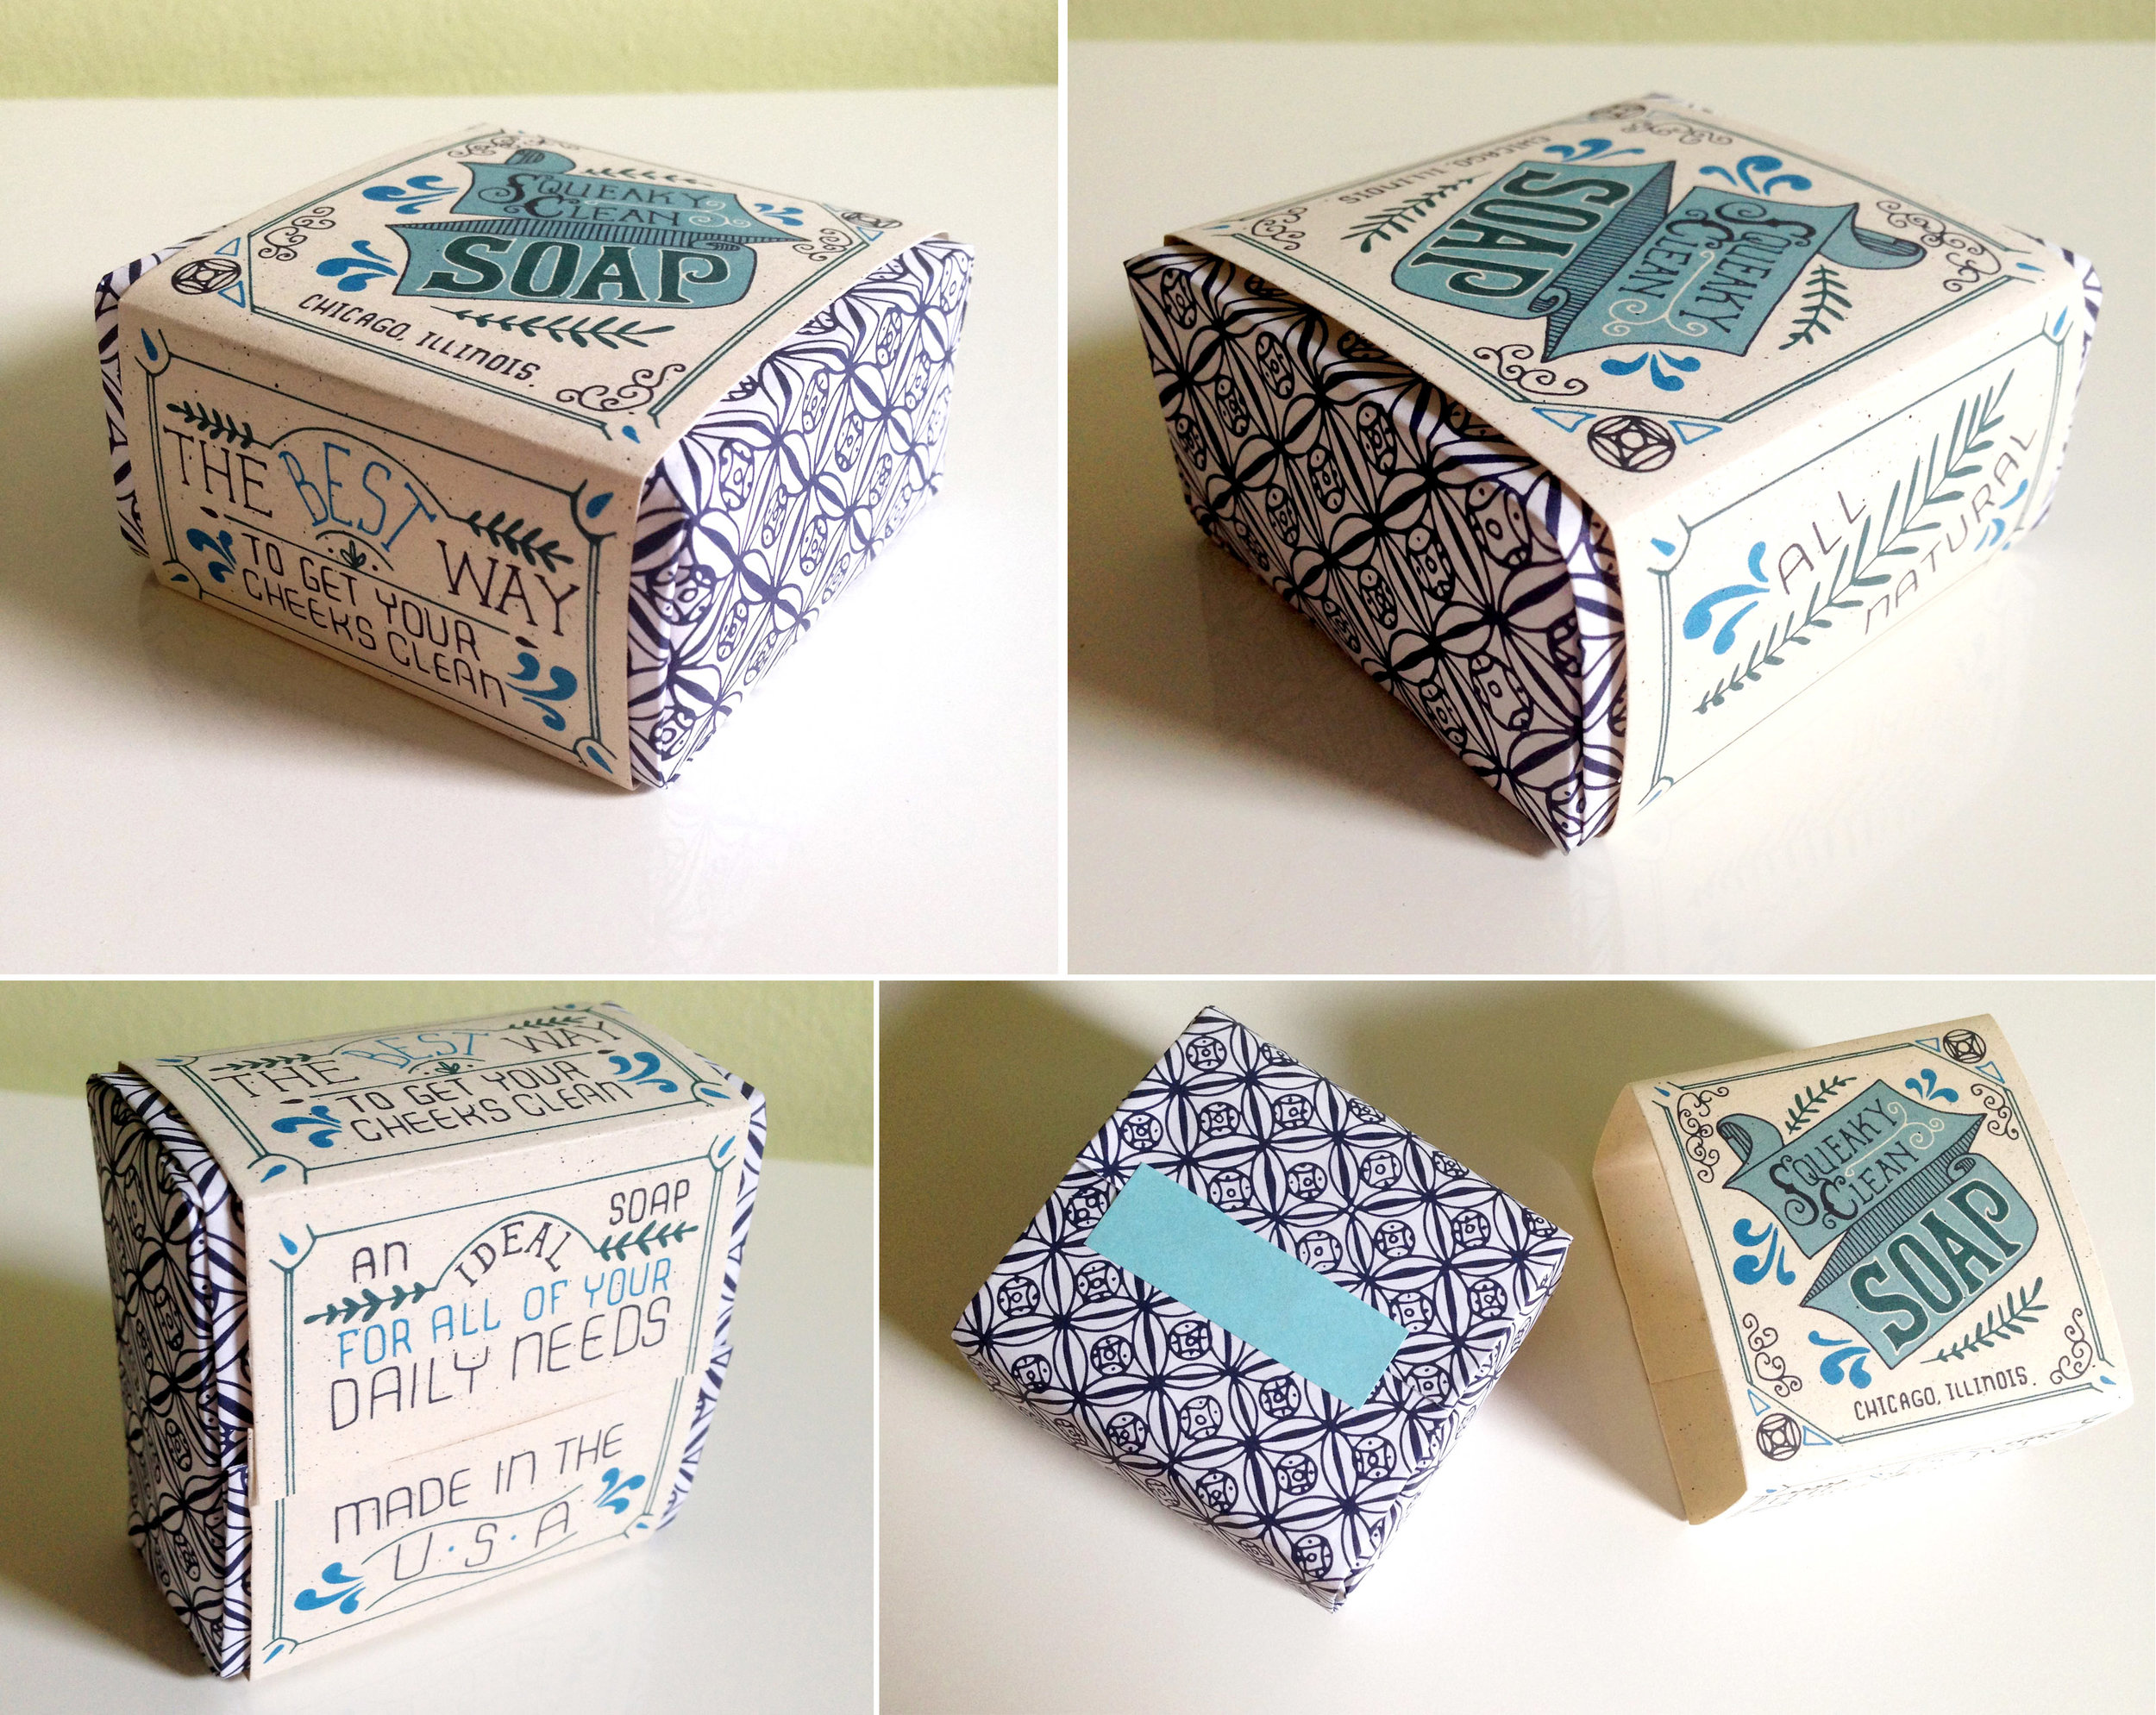 Various photos of finished soap packaging.